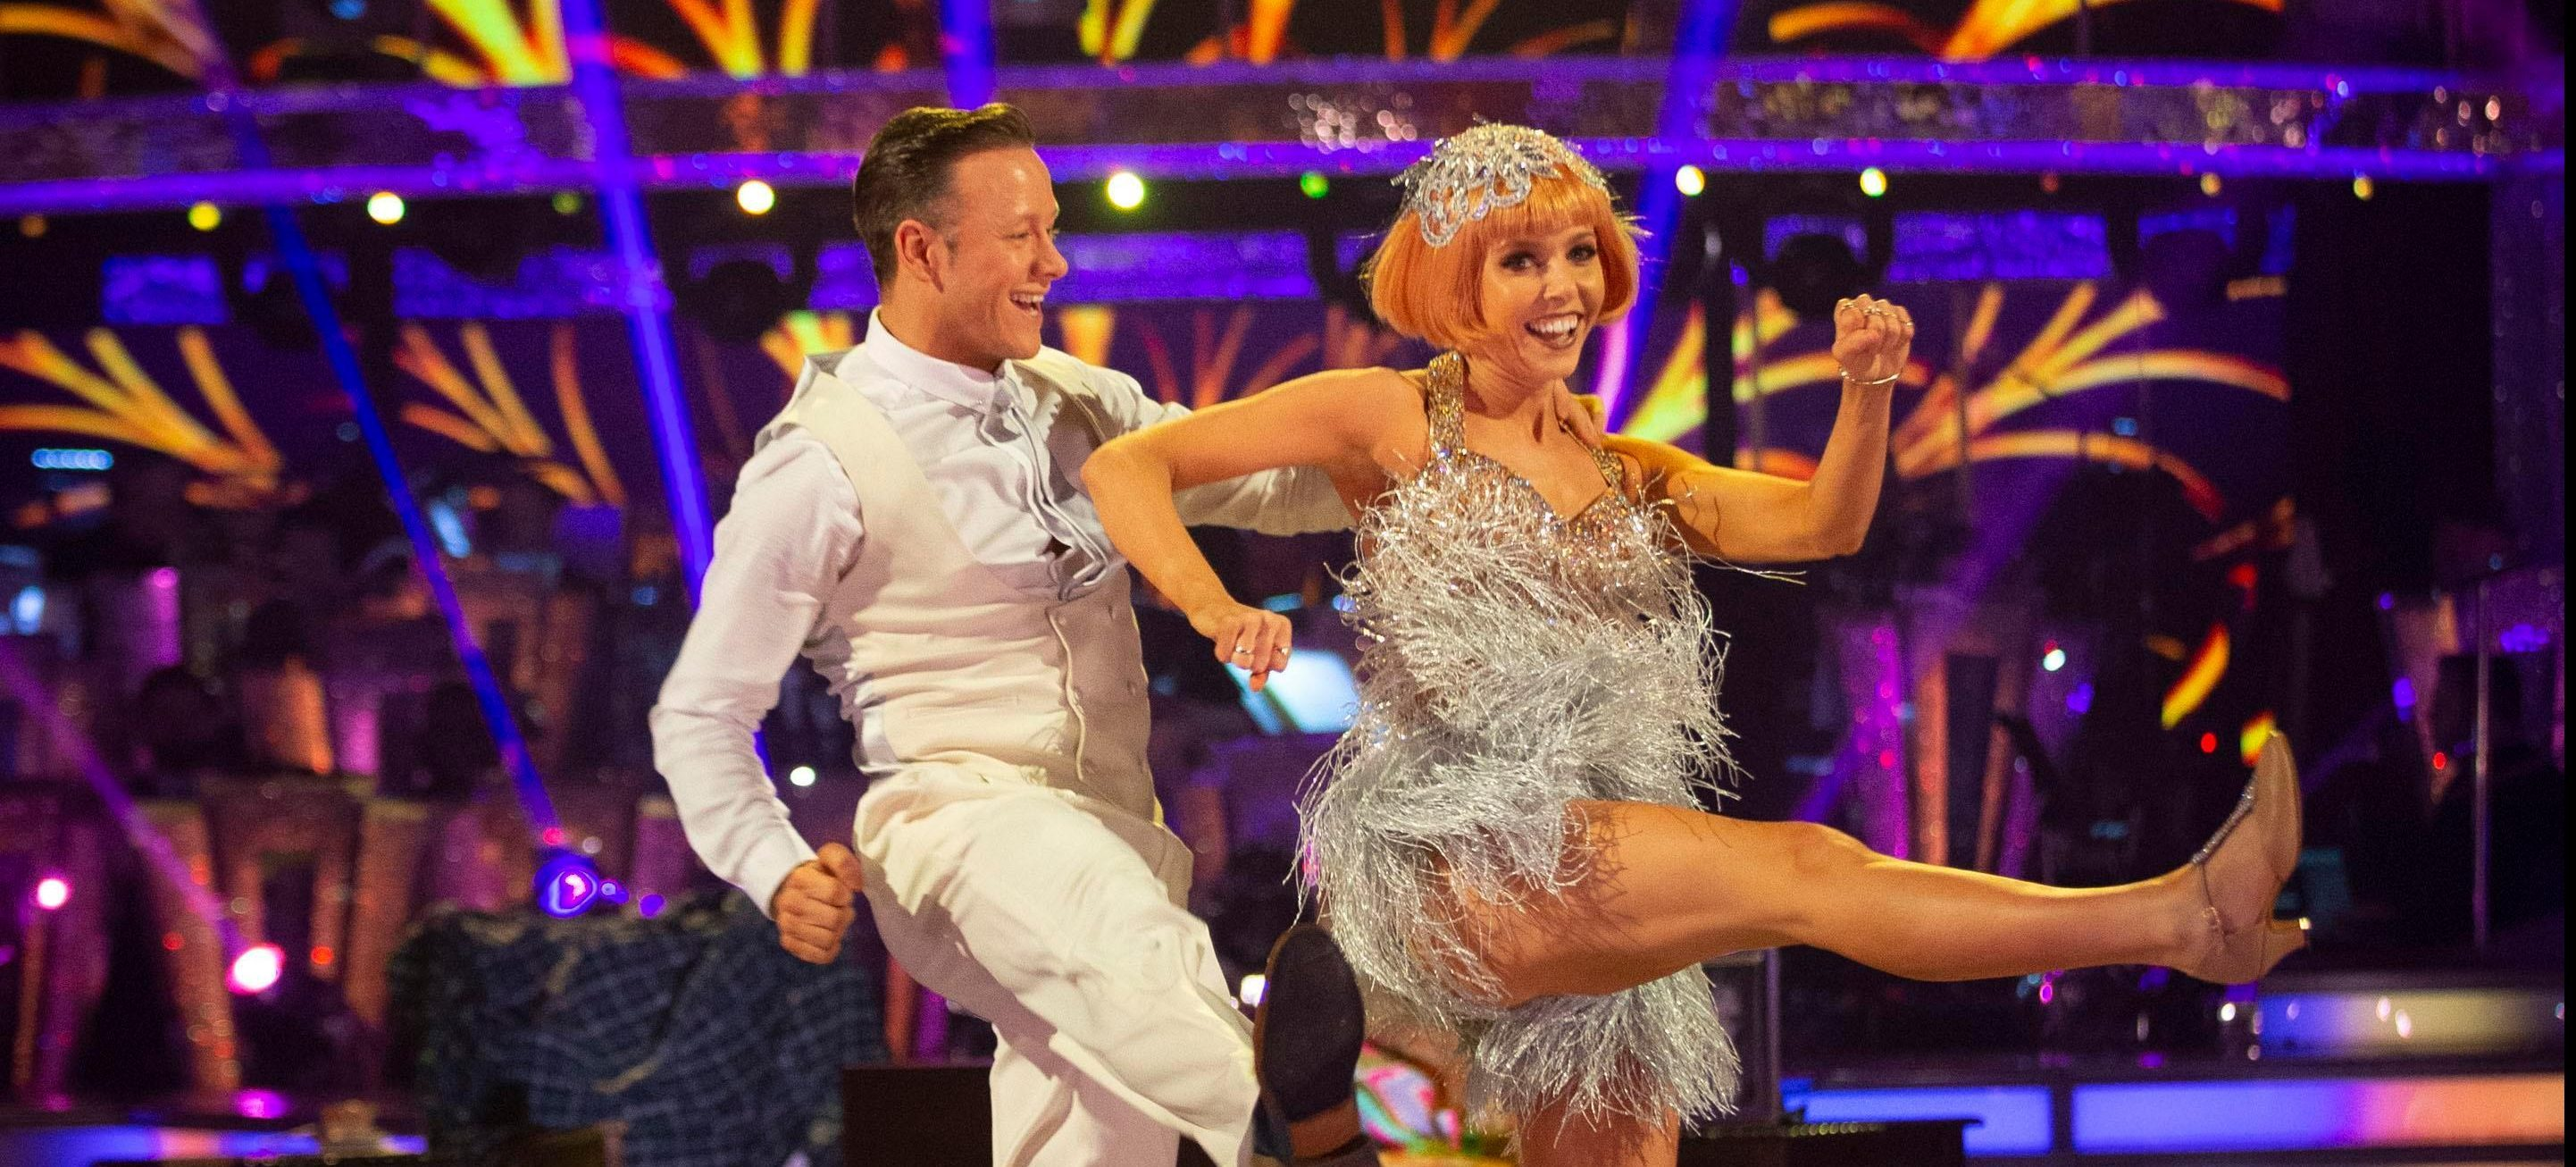 Stacey Dooley's Strictly win at risk as Kevin Clifton admits he 'crumbles under pressure' in finals